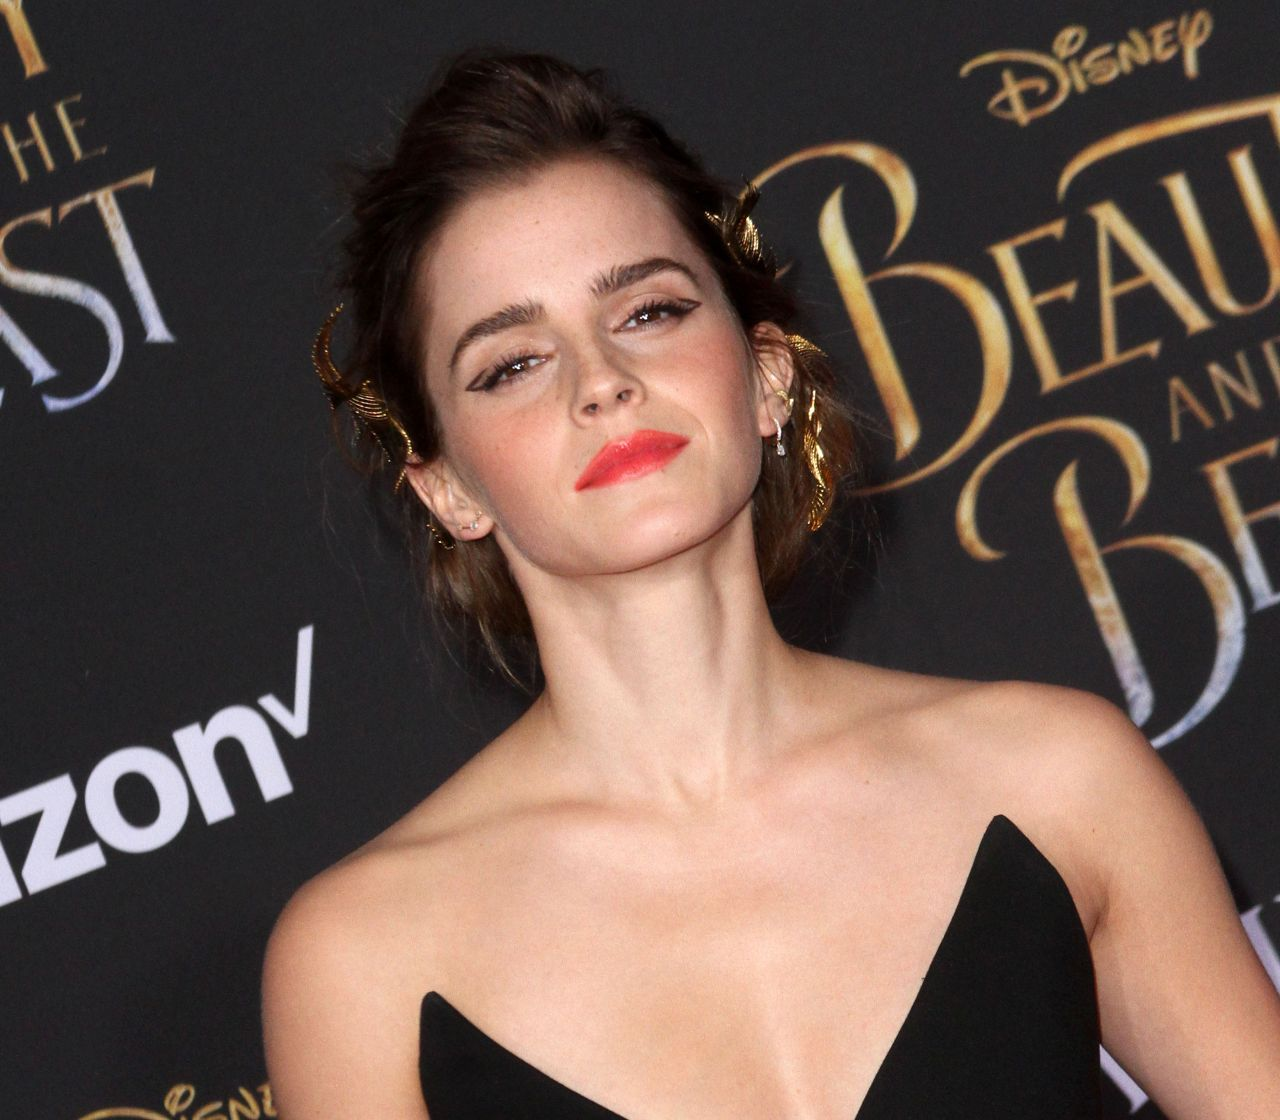 emma-watson-at-beauty-and-the-beast-premiere-in-los-angeles-3-2-2017-5.jpg